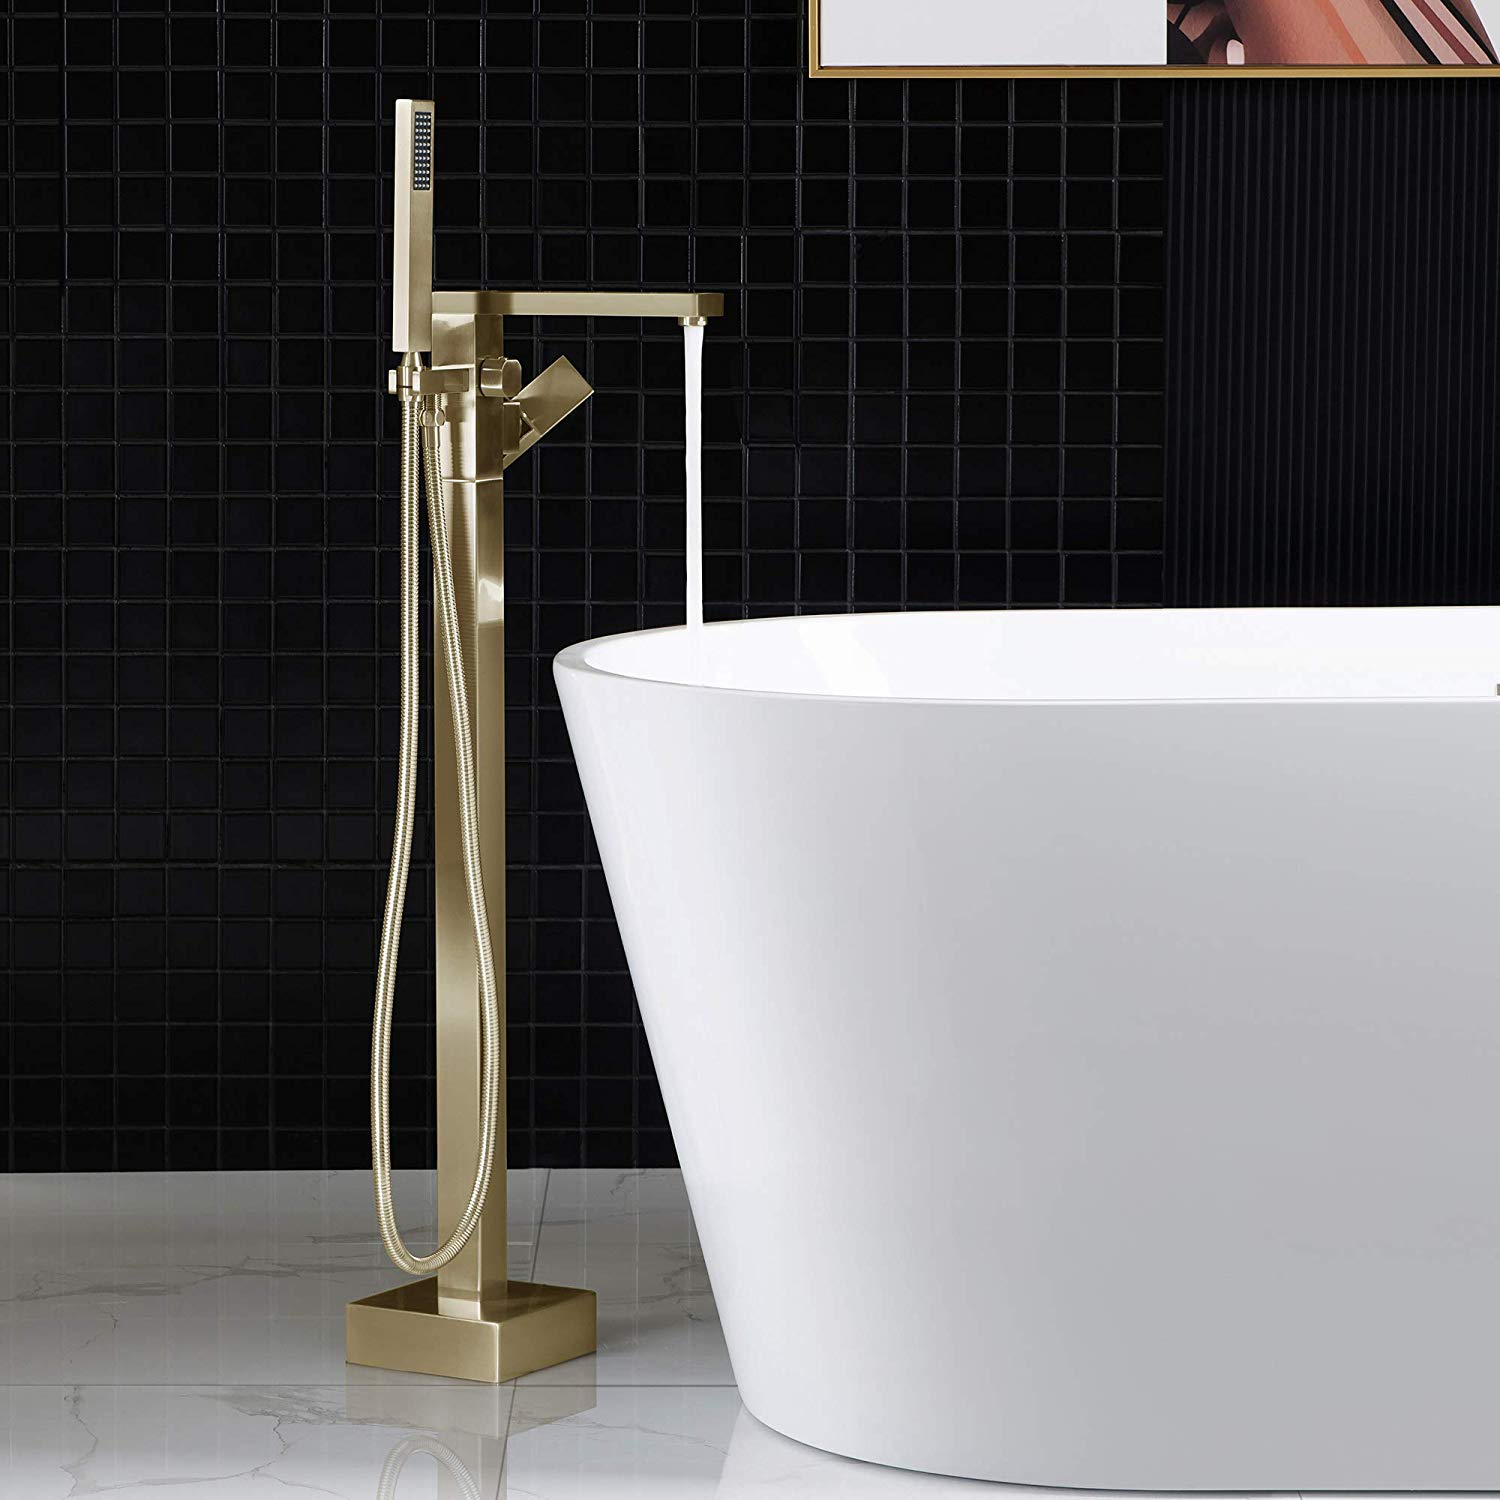 Woodbridge F0008 BG Freestanding Tub Faucet Square Design, Golden Finish ,F-0008